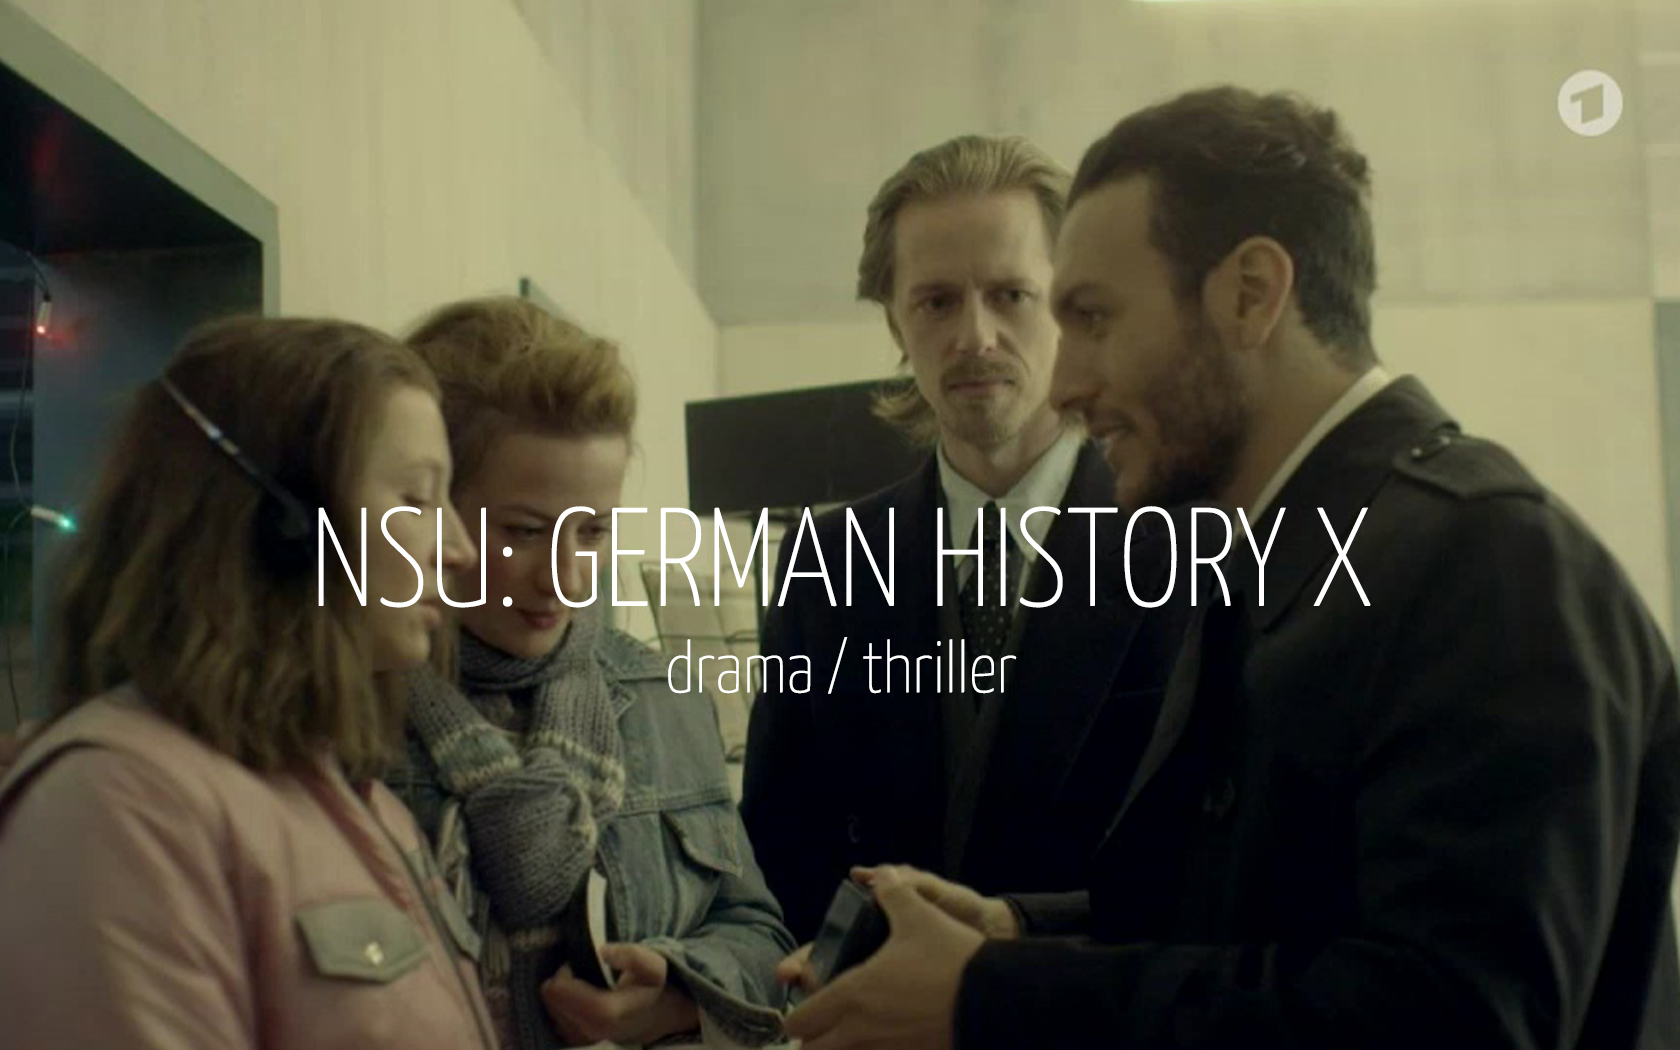 Scandinavian actor Fredrik Wagner as scientologist in drama film NSU: German History X with Anna Maria Mühe, Nina Gummich and Angus McGruther